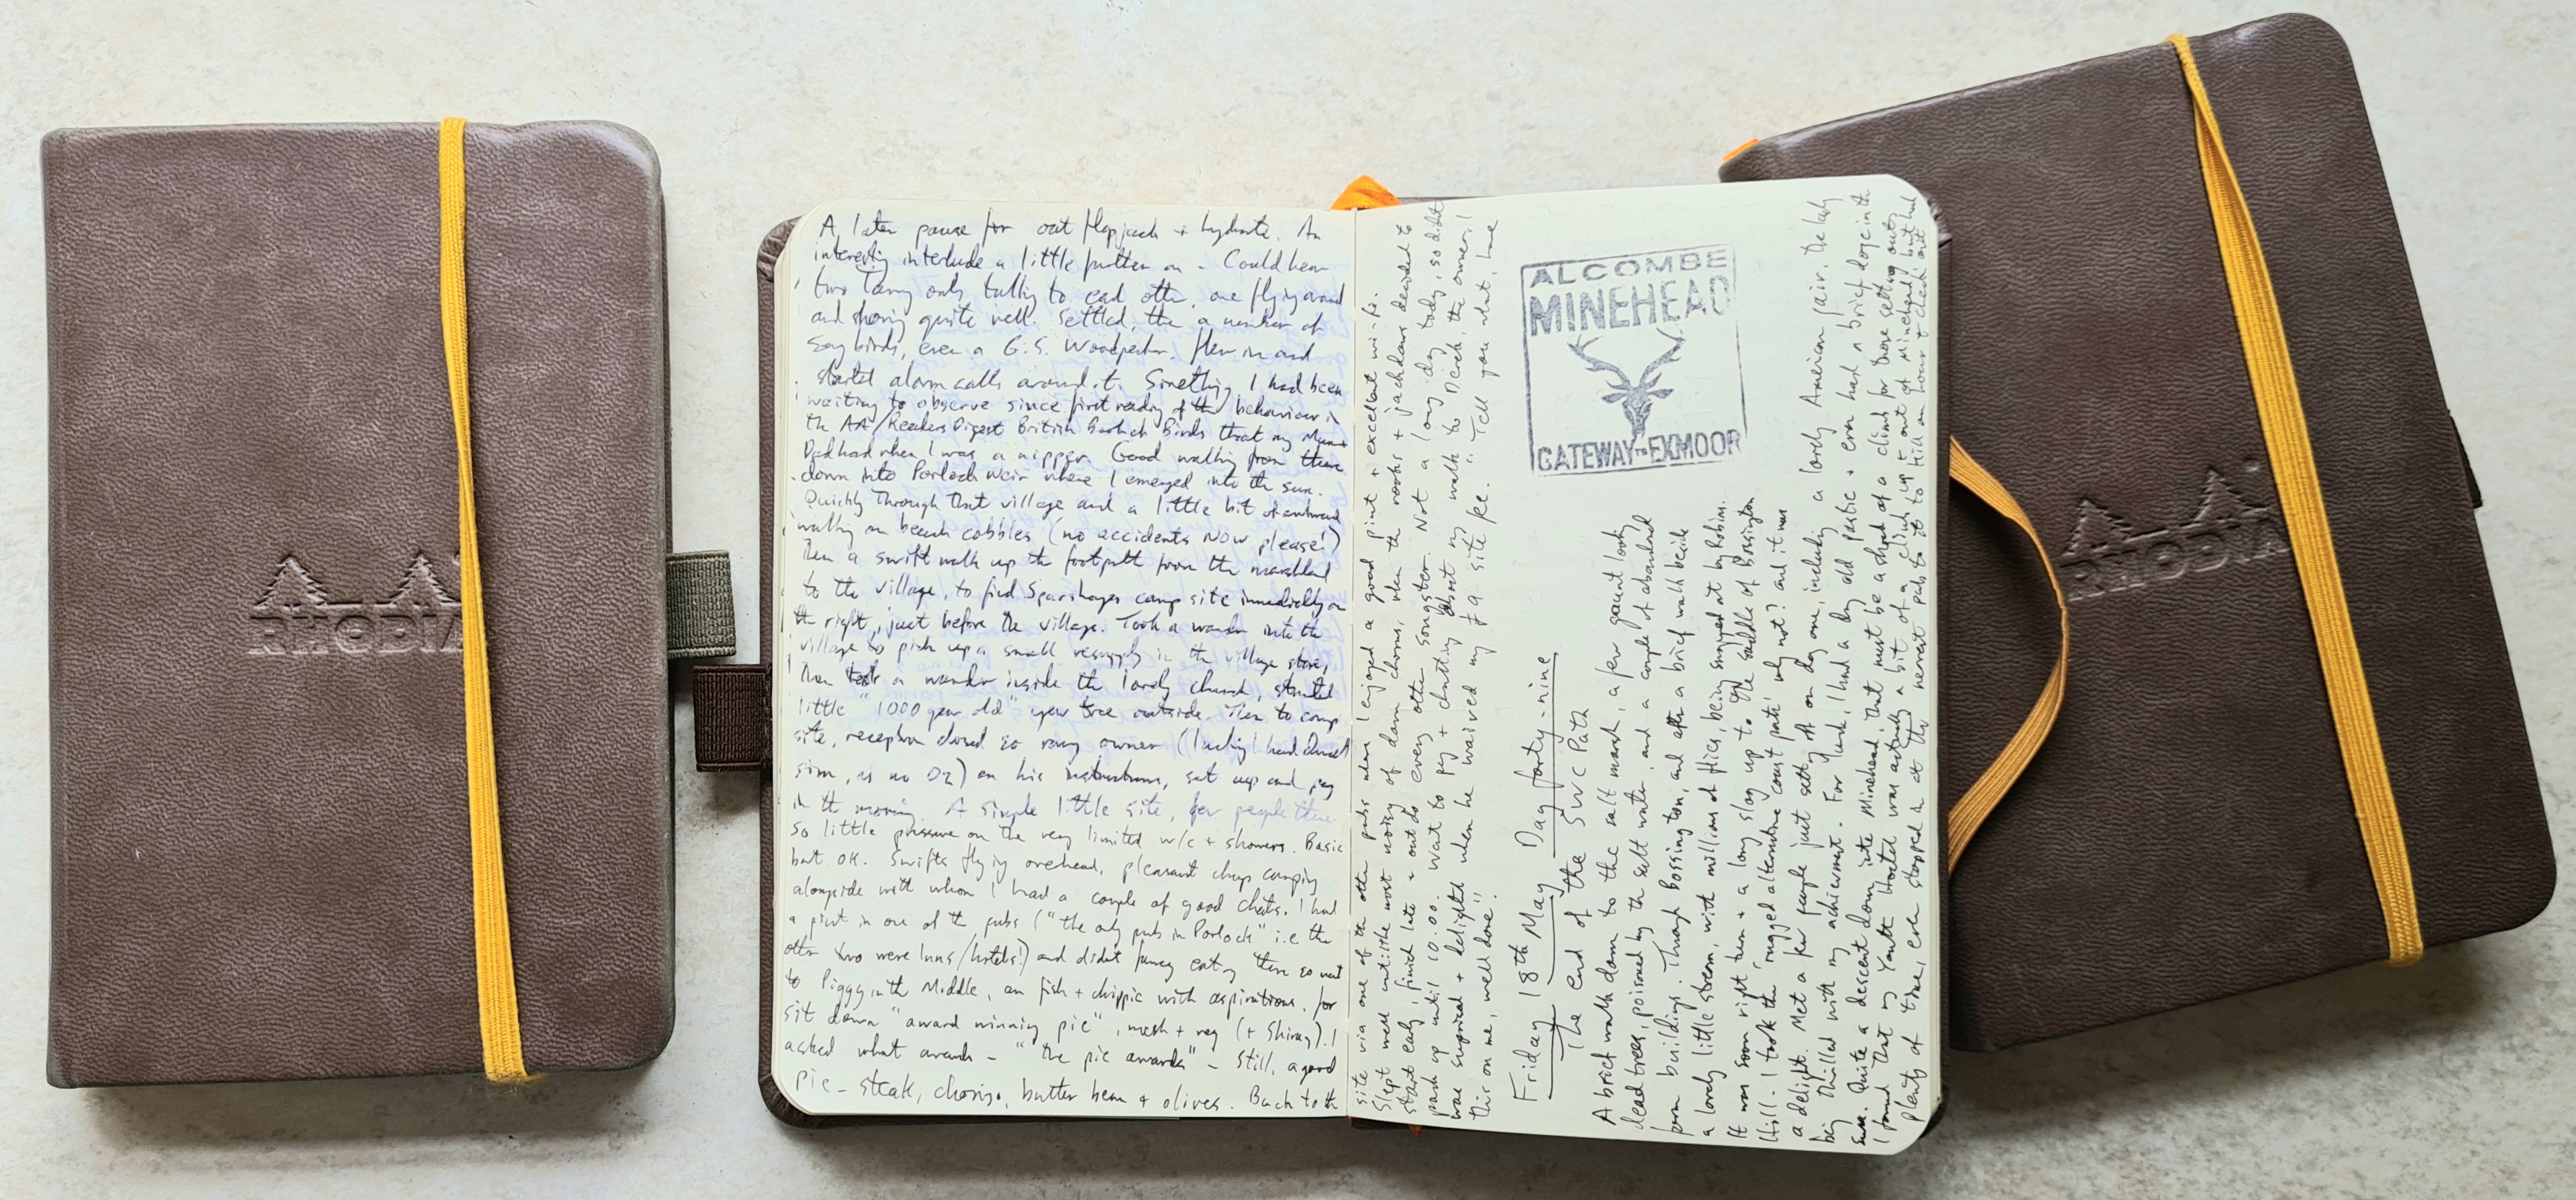 My 2000 mile hike across mainland Britain is recorded in three French made Rhodia Webbie Rhodiarama sketchbooks. I wanted something more robust to record my one hundred and fifty two days on trail. Each journal has 96 (192 faces) 140mm x 87mm 90gsm Clairefontaine plain ivory pages. The heavy hardback covers are slightly larger than the pages. These notebooks have a a gusset pocket inside the back cover, ribbon and elastic closure. I also fixed a pen loop to each volume